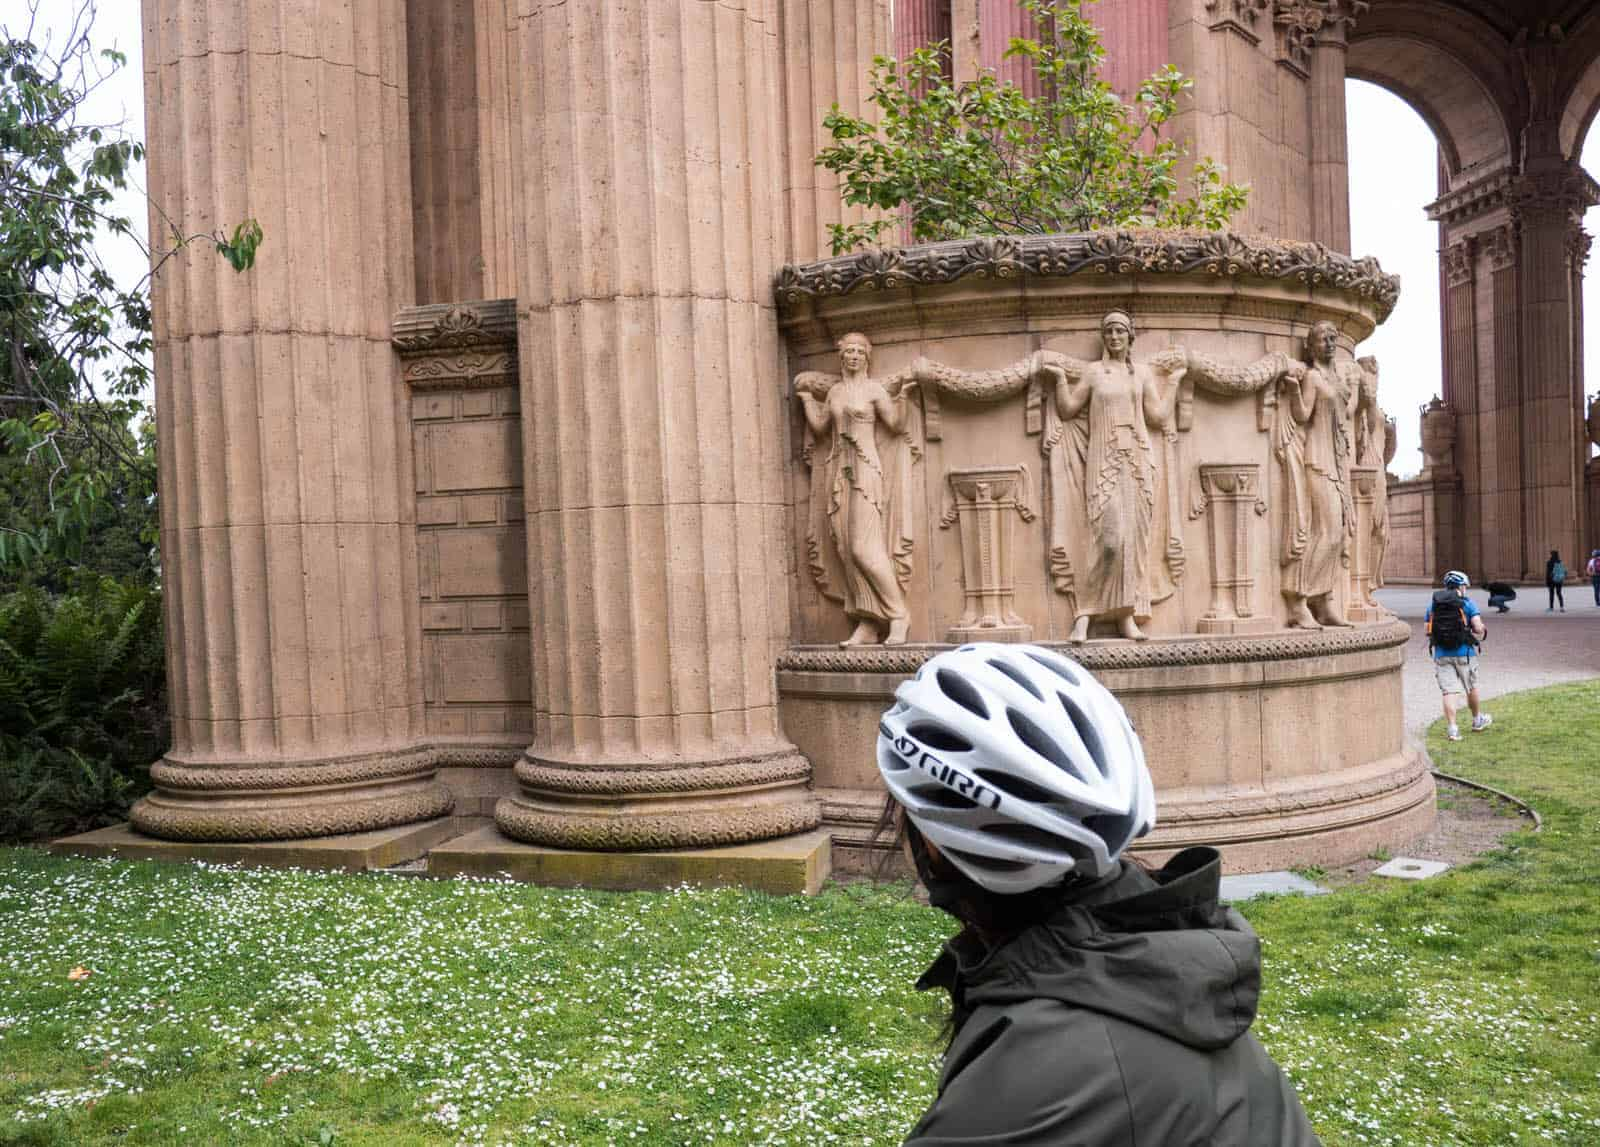 San Francisco's Palace of Fine Arts relief detail. Woman riding past on a bike.